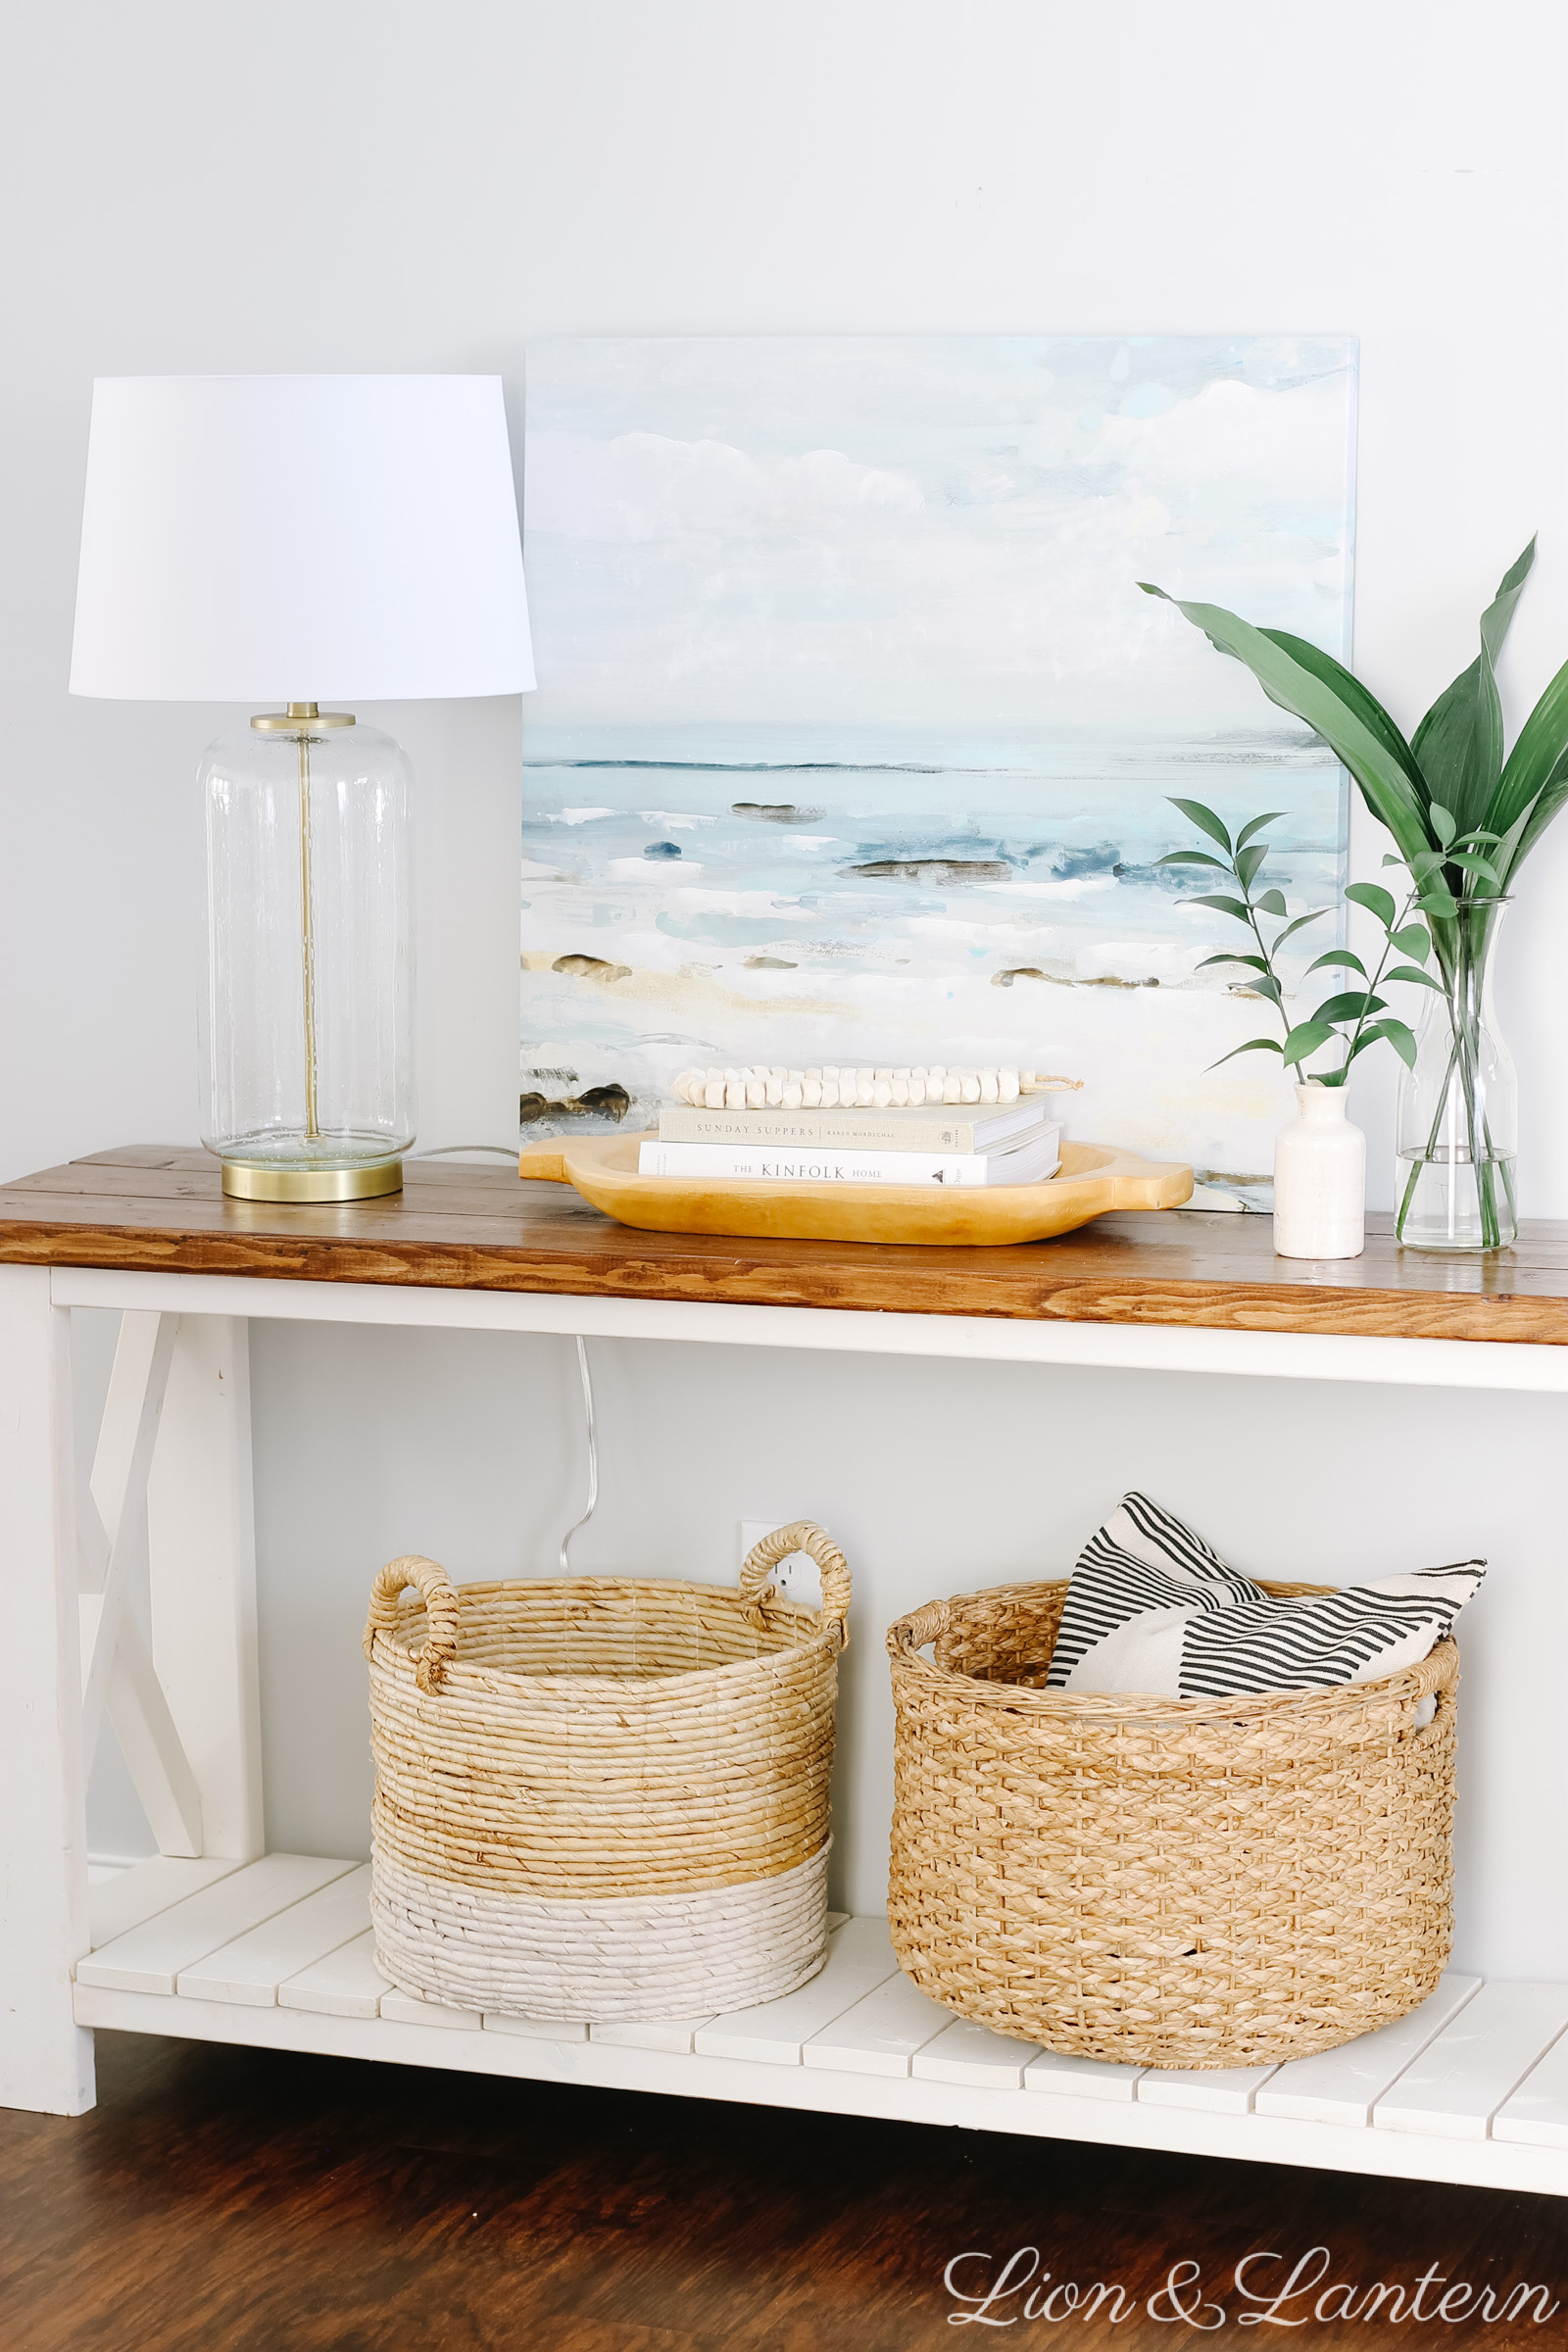 Spring Home Tour 2019 at LionAndLantern.com | entryway, coastal home, minimalist decor, california decor, budget decorating, modern boho